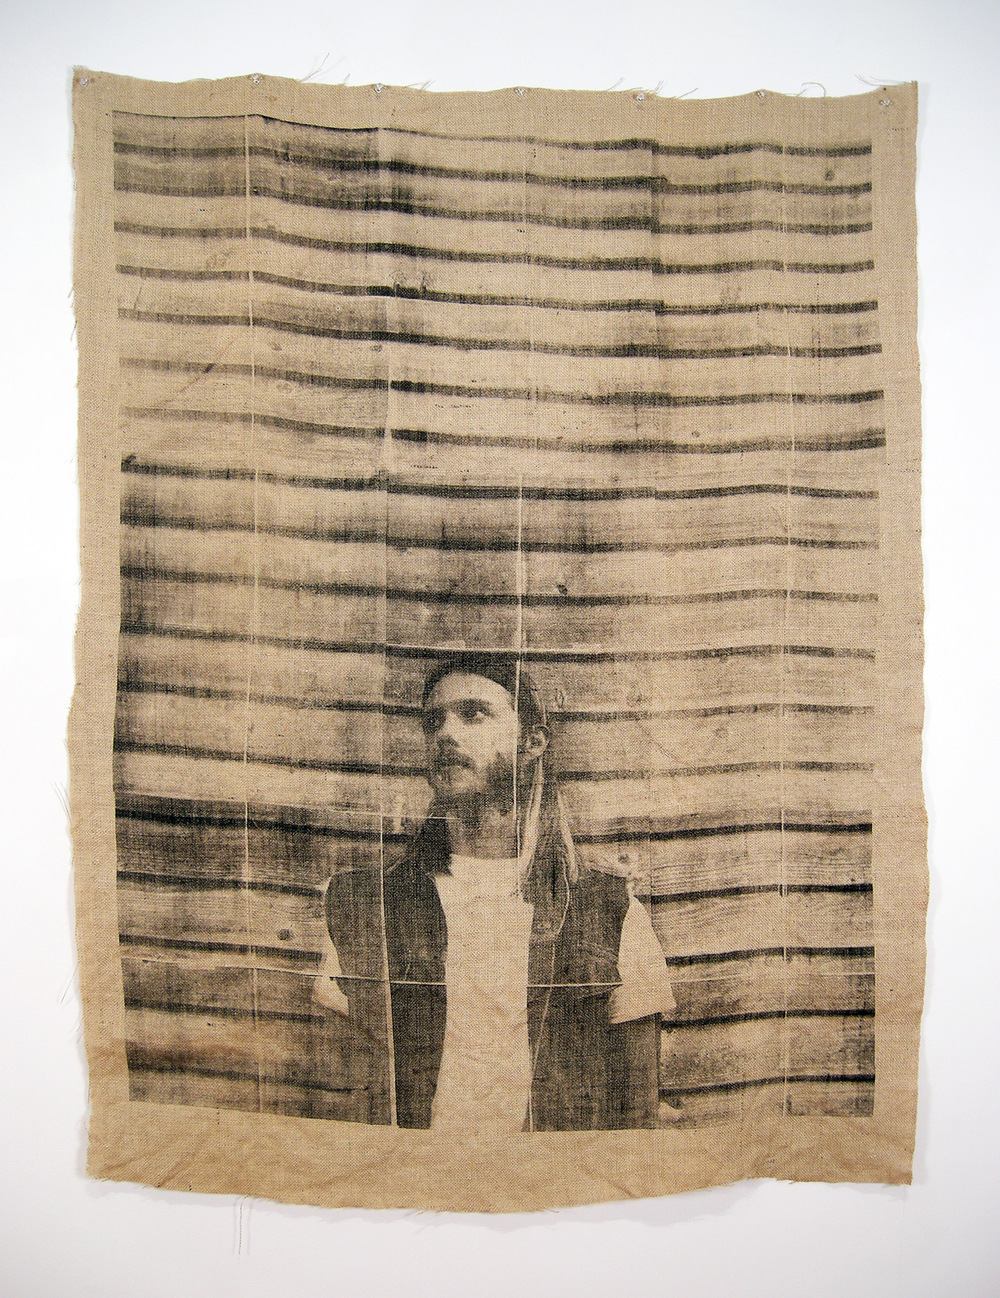 Brian Garbrecht - For Sale By Owner Screen Print Mosaic on Burlap. Printed w/ 9 Screens, Composed of 36 Separate Images. 2015